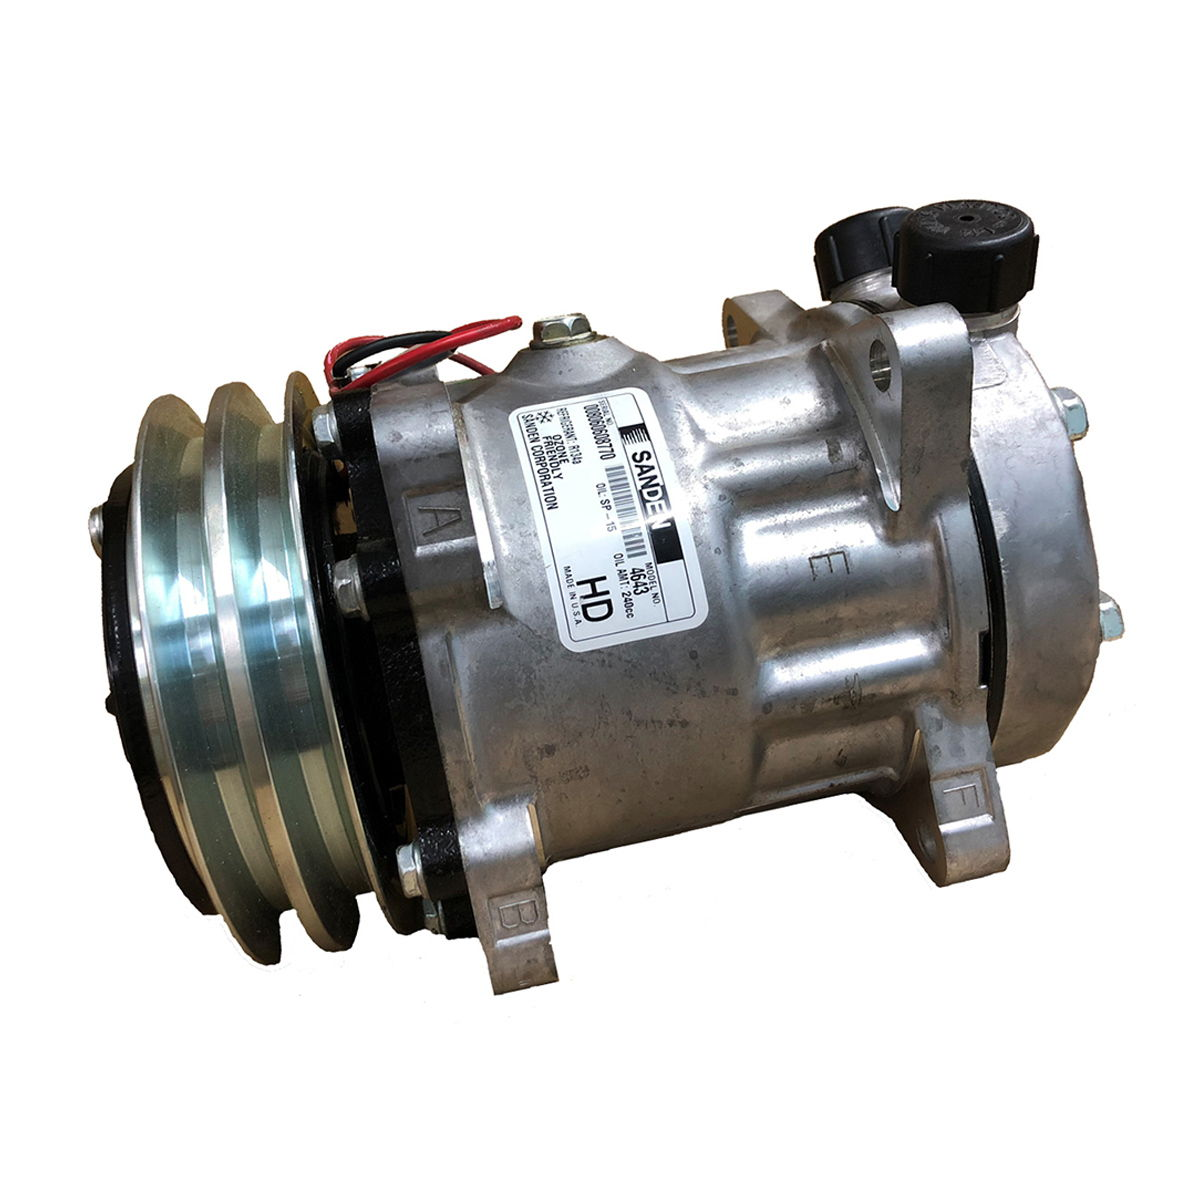 ORIGINAL SANDEN A/C Compressor and Clutch CO 4643